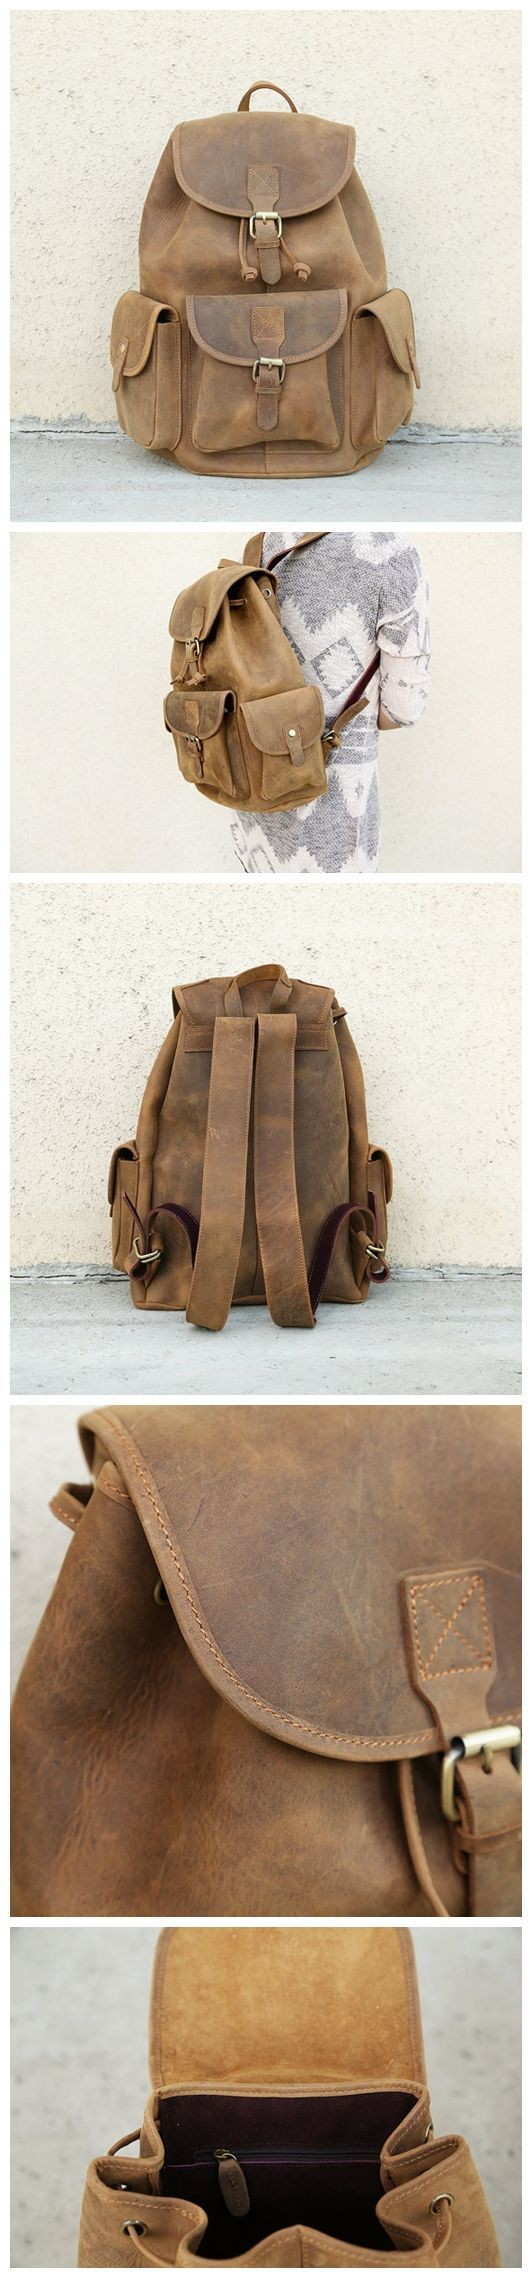 Handmade Vintage Leather Backpack / College Backpack /School Backpack 8891 from…